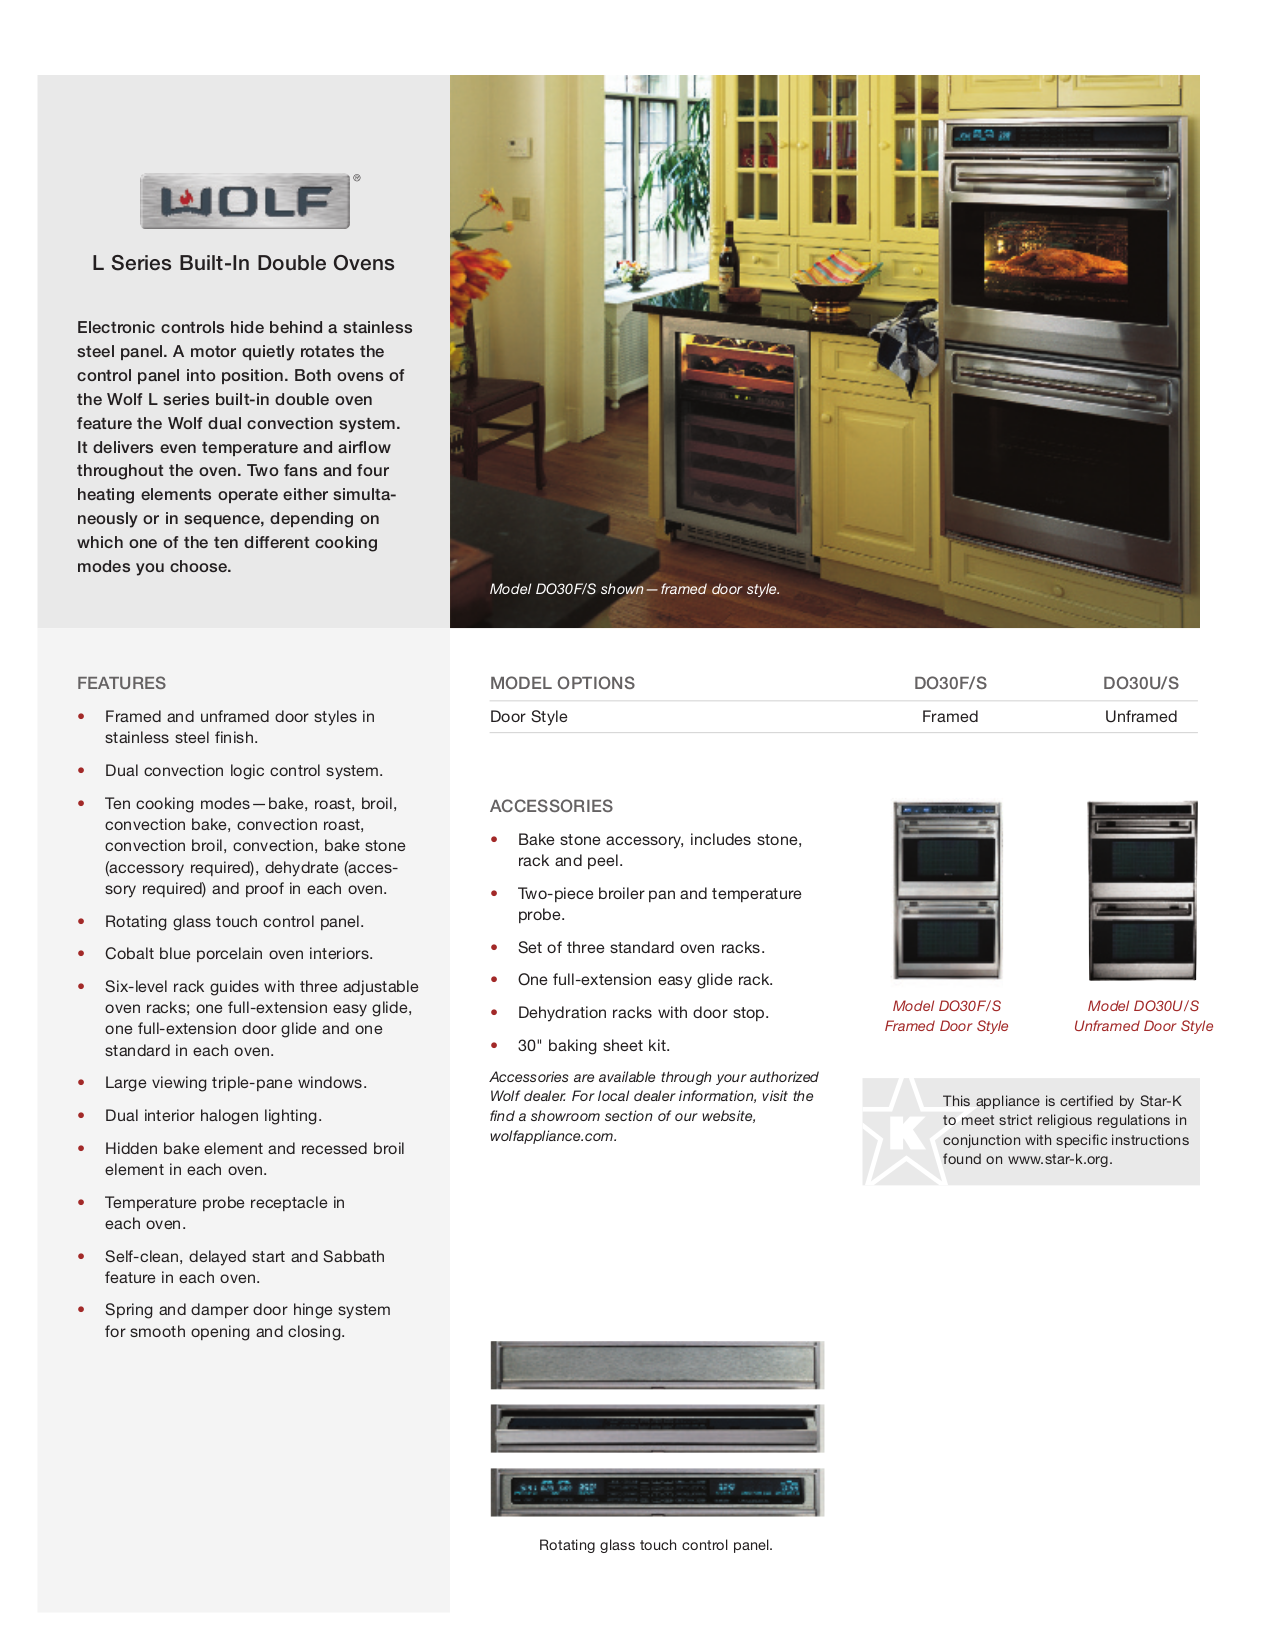 pdf for Wolf Oven L Series DO30F manual